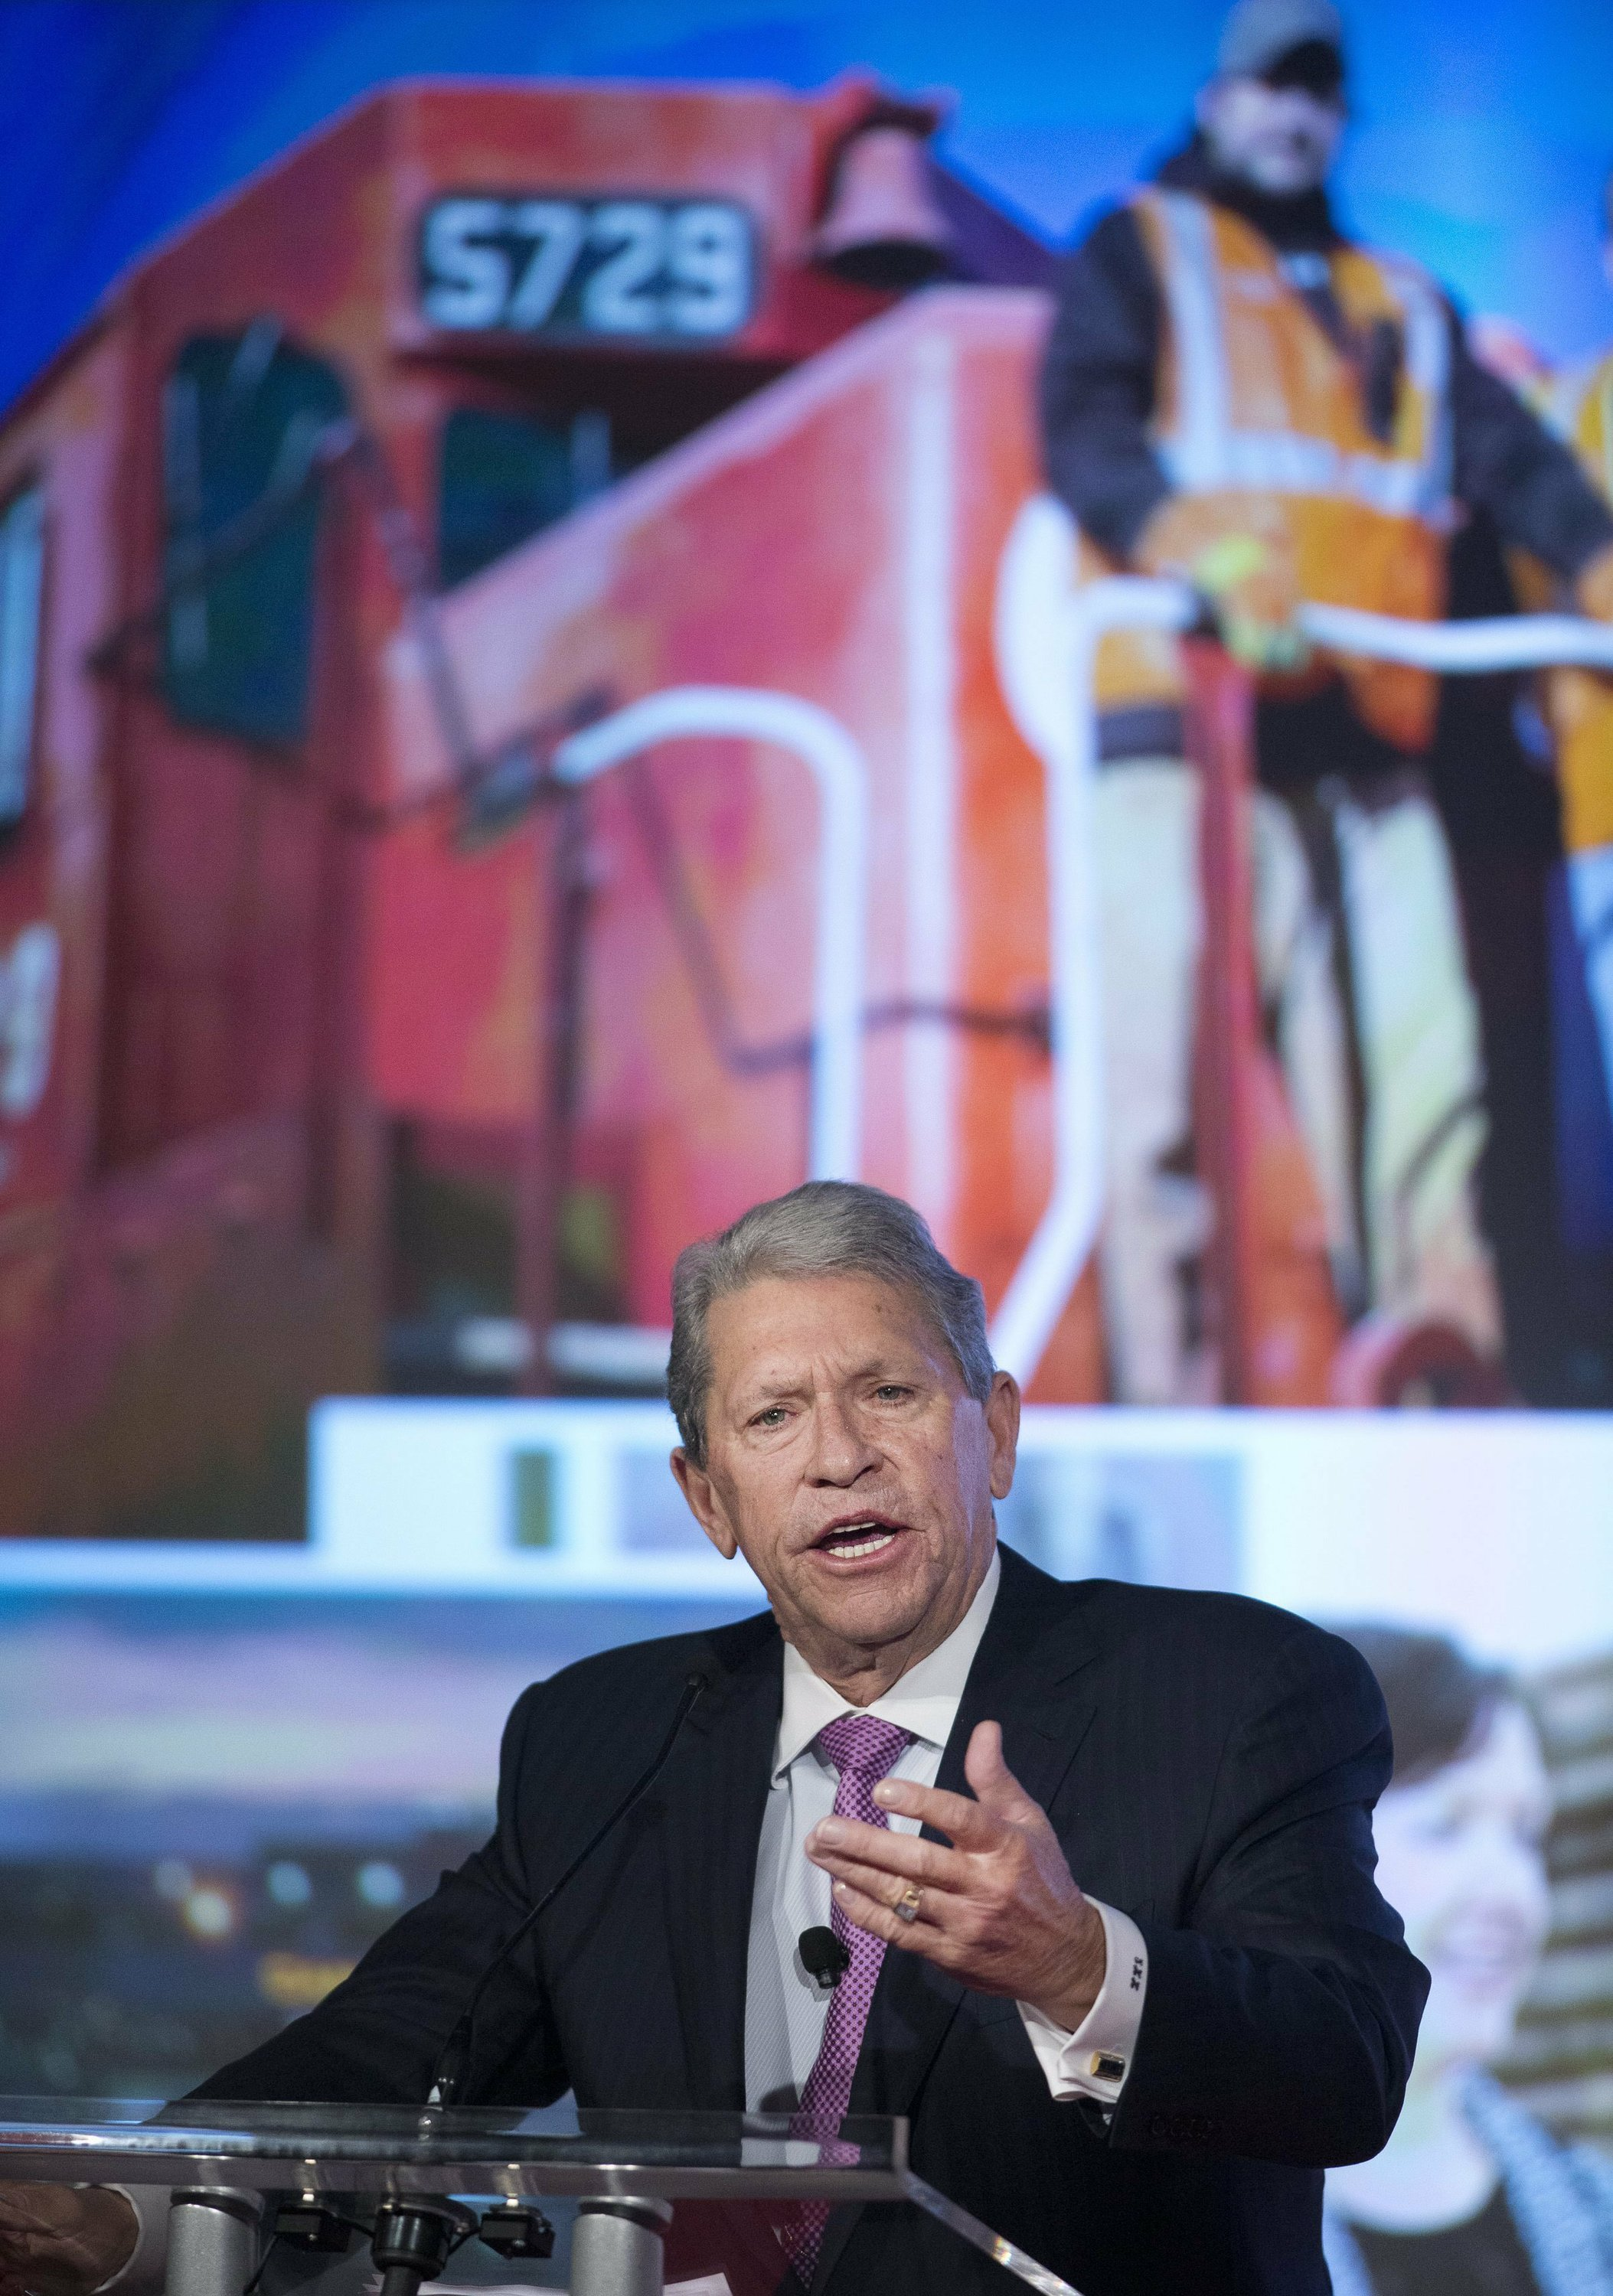 CSX may not be the only rail target for activist investor